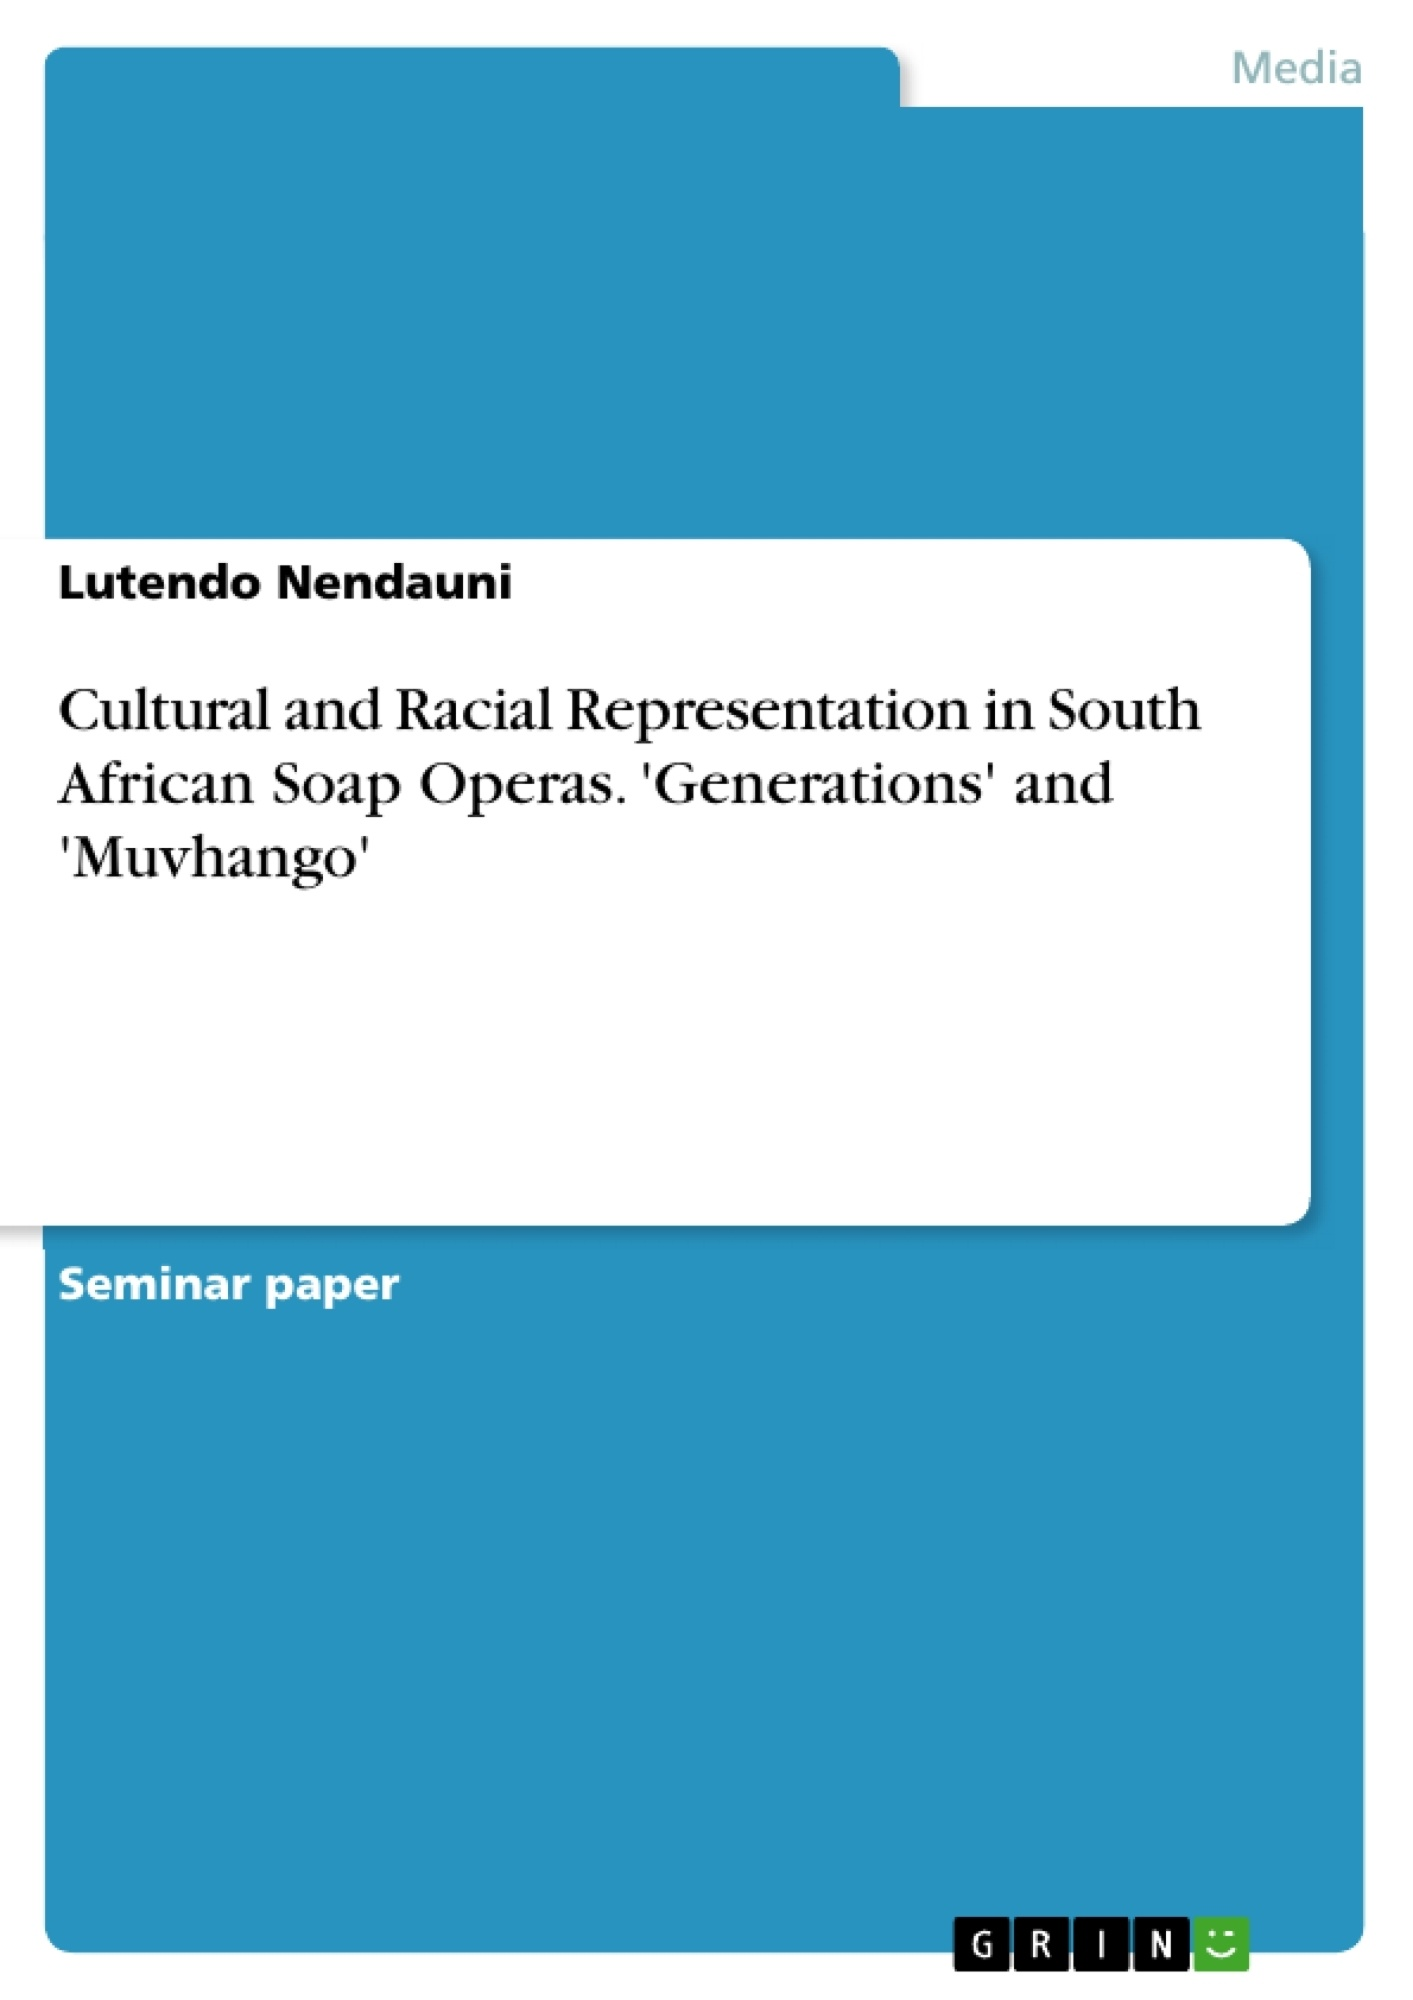 Title: Cultural and Racial Representation in South African Soap Operas. 'Generations' and 'Muvhango'